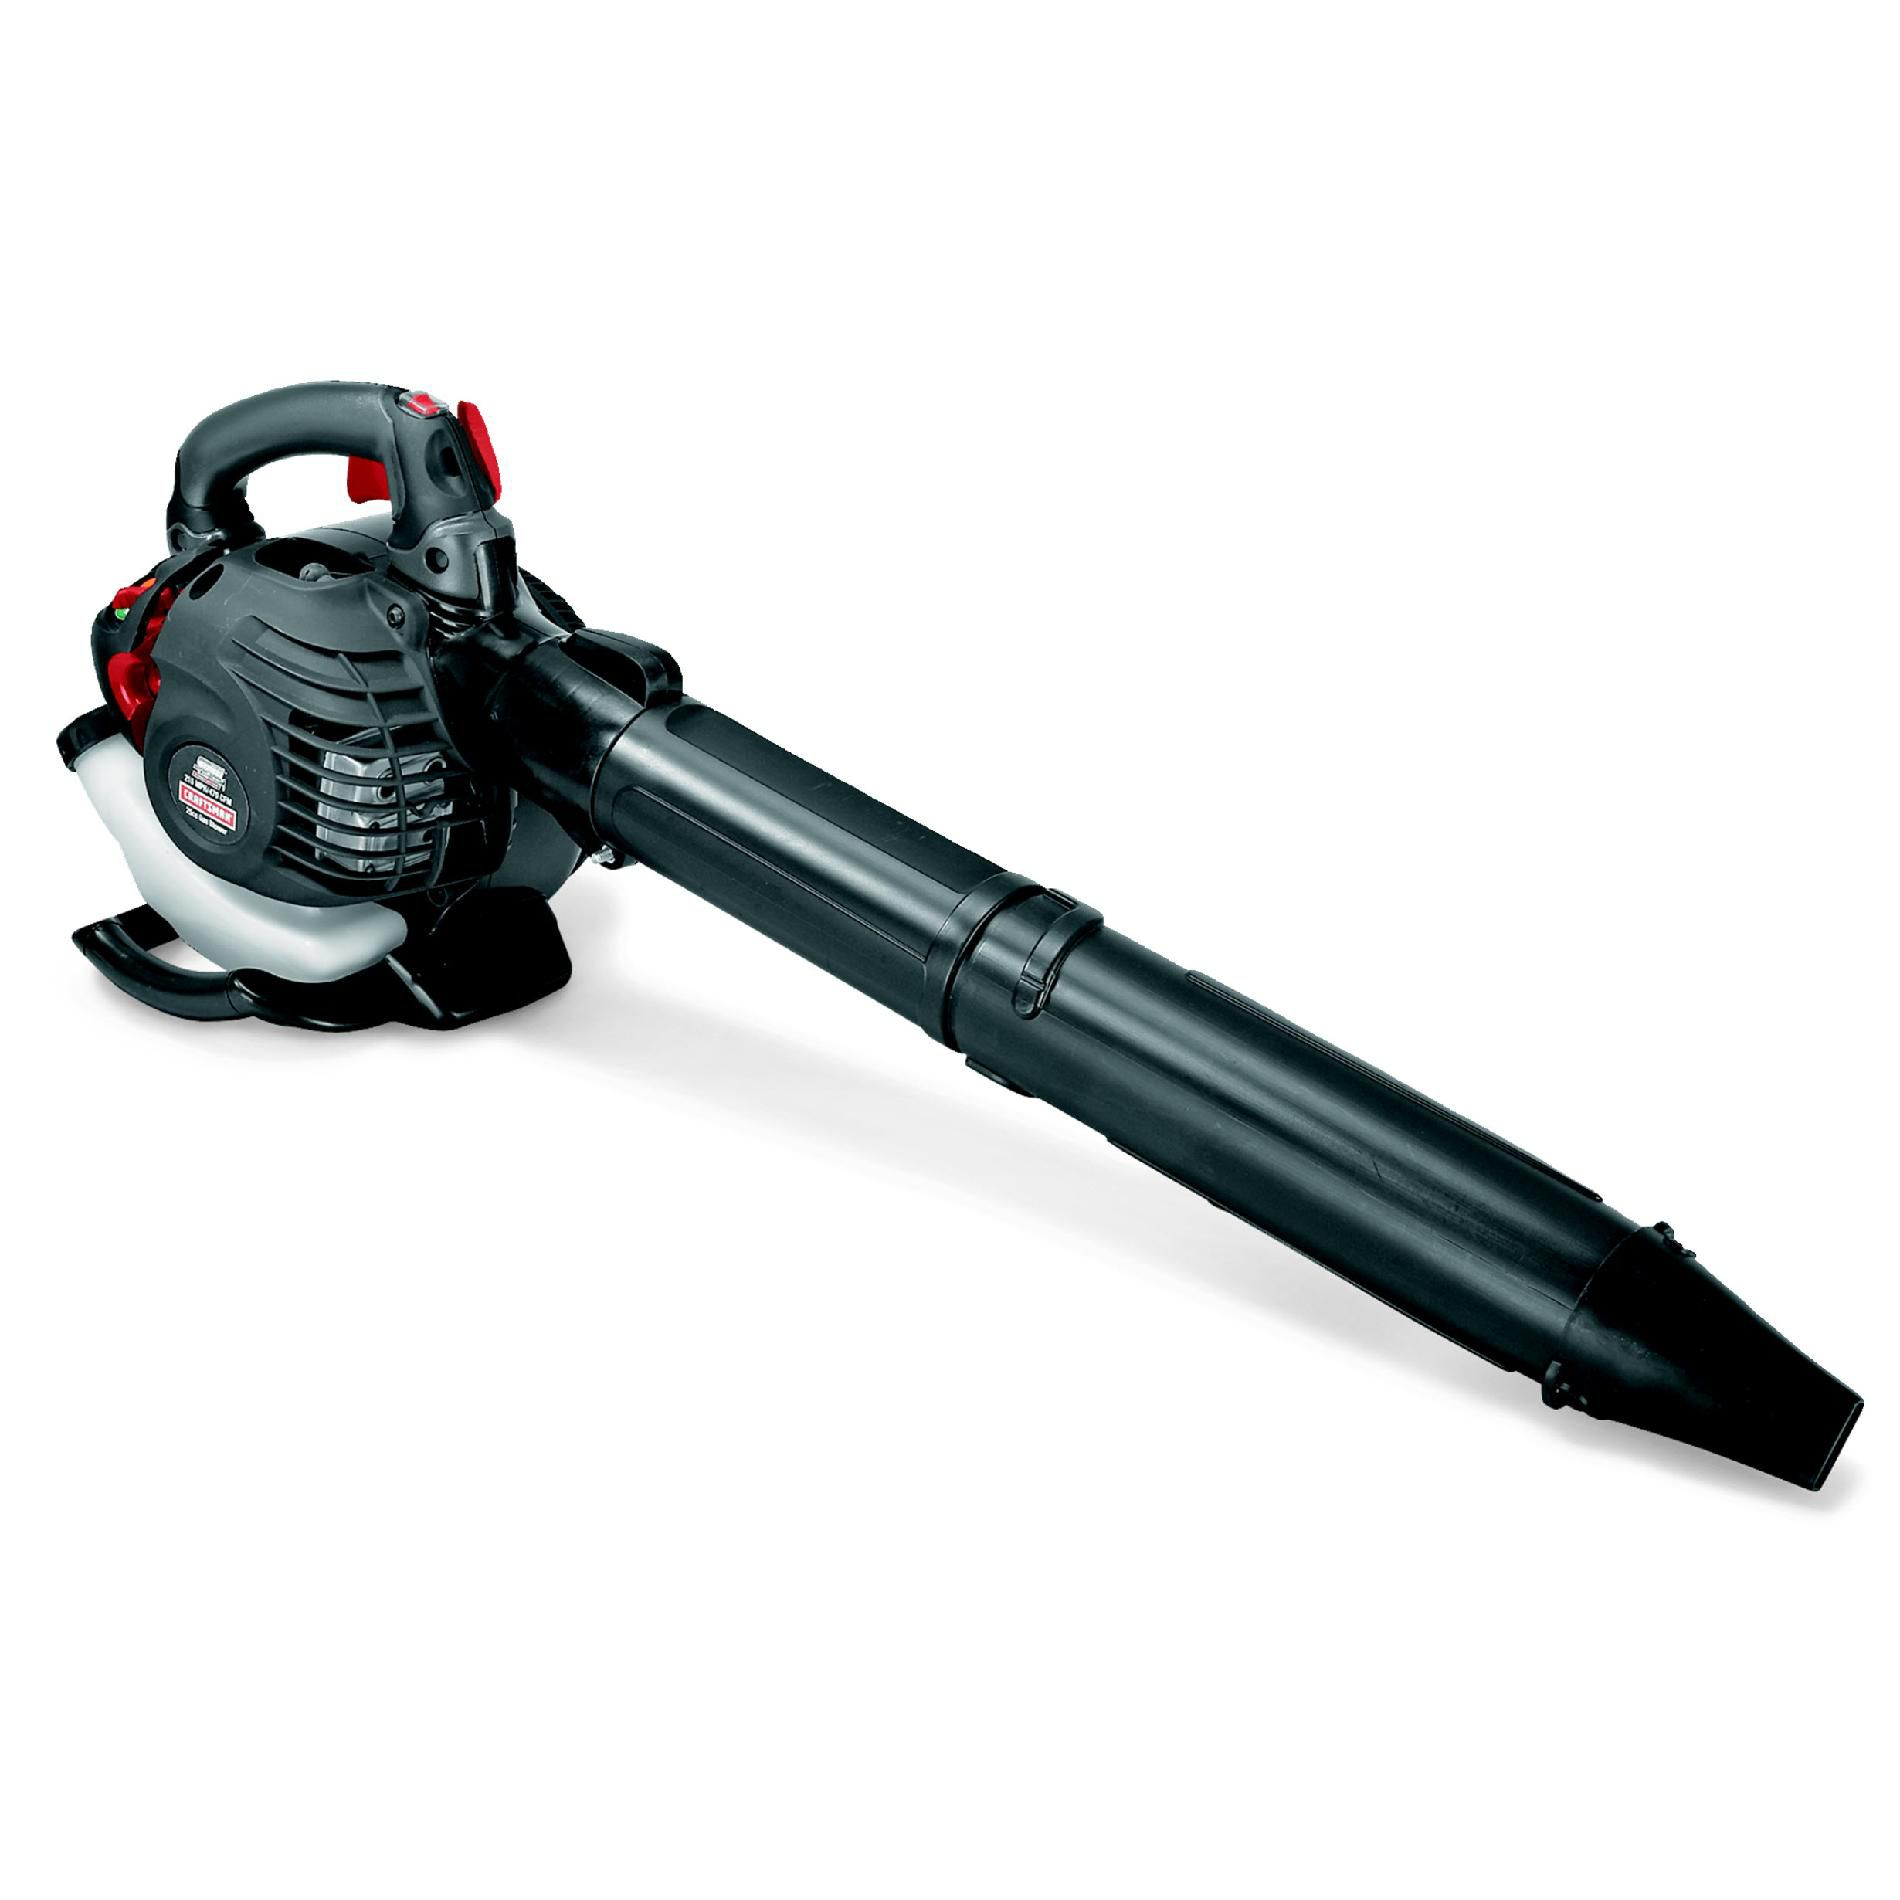 Craftsman 25cc 2-Cycle Gas Powered Leaf Blower/Vac